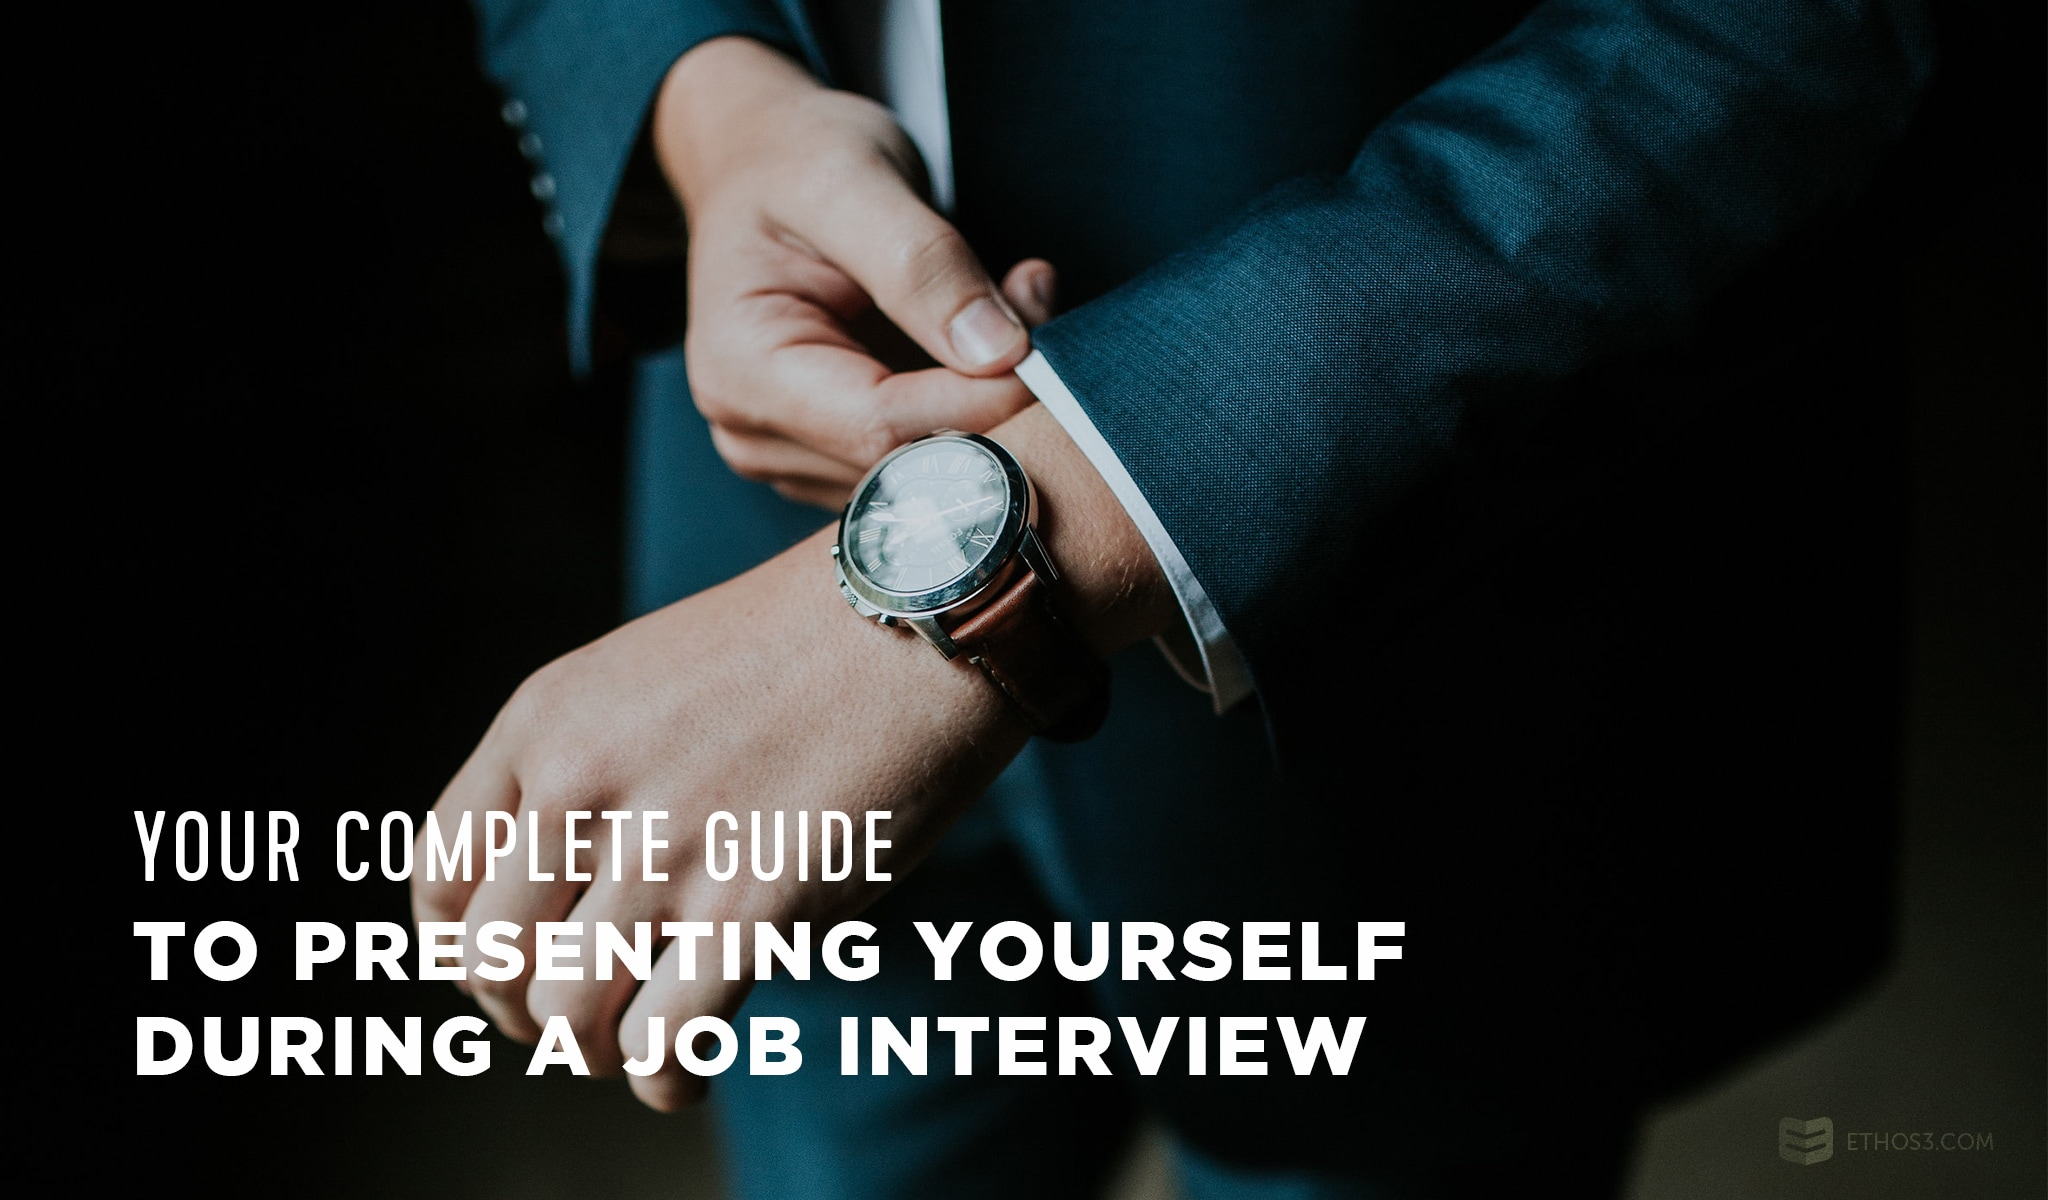 Yourplete Guide To Presenting Yourself During A Job Interviewimage